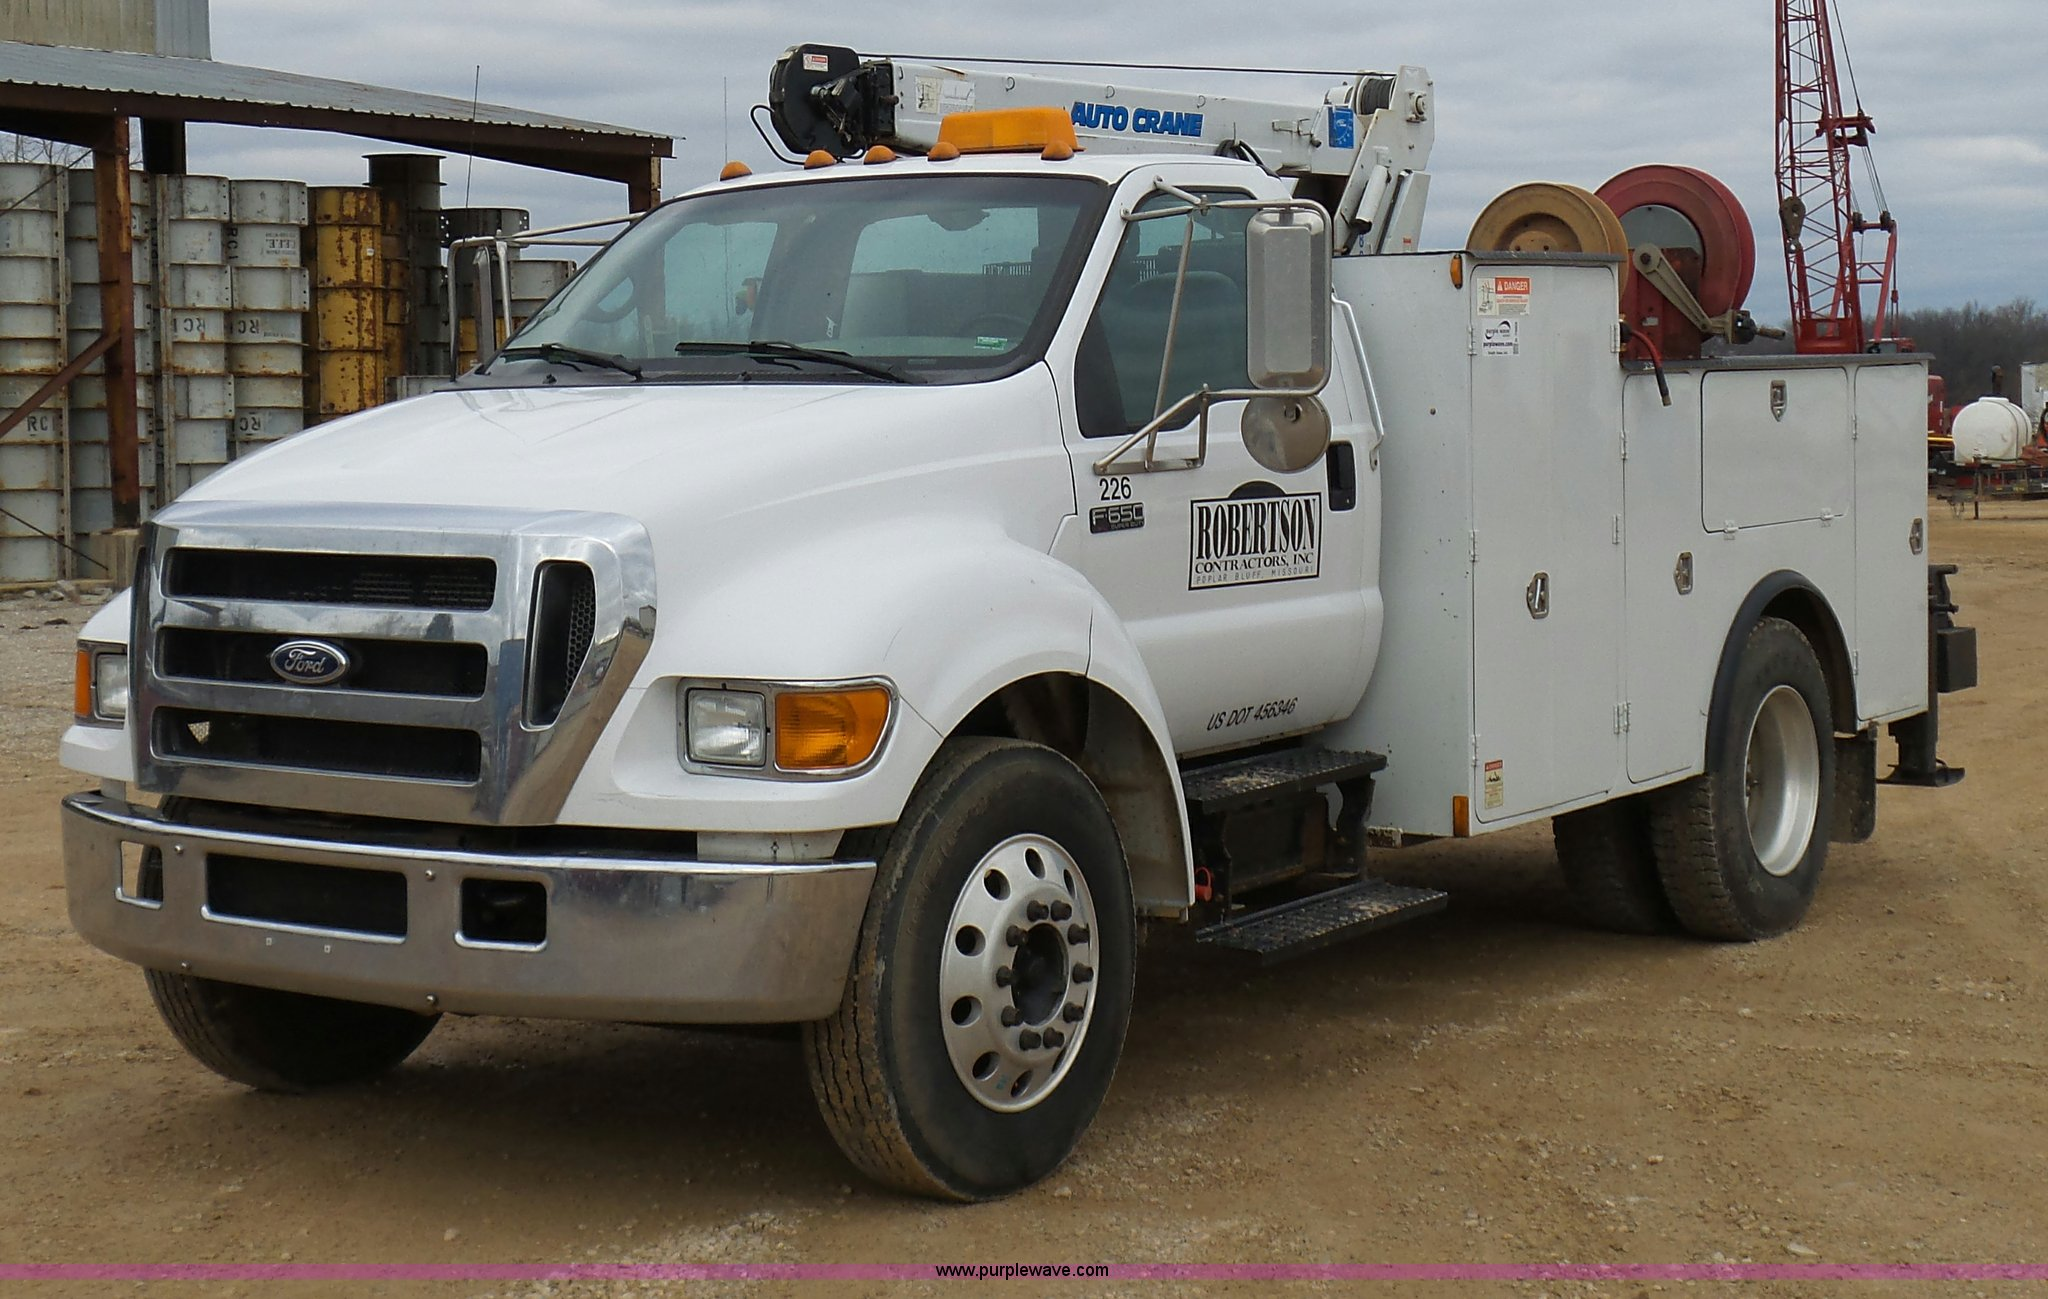 Ford f650 trailer tow wiring printer cable wiring diagram q see 2006 ford f650 service truck with crane item k7669 sold k7669a k7669 ford f650 trailer tow wiring ford f650 trailer tow wiring sciox Choice Image